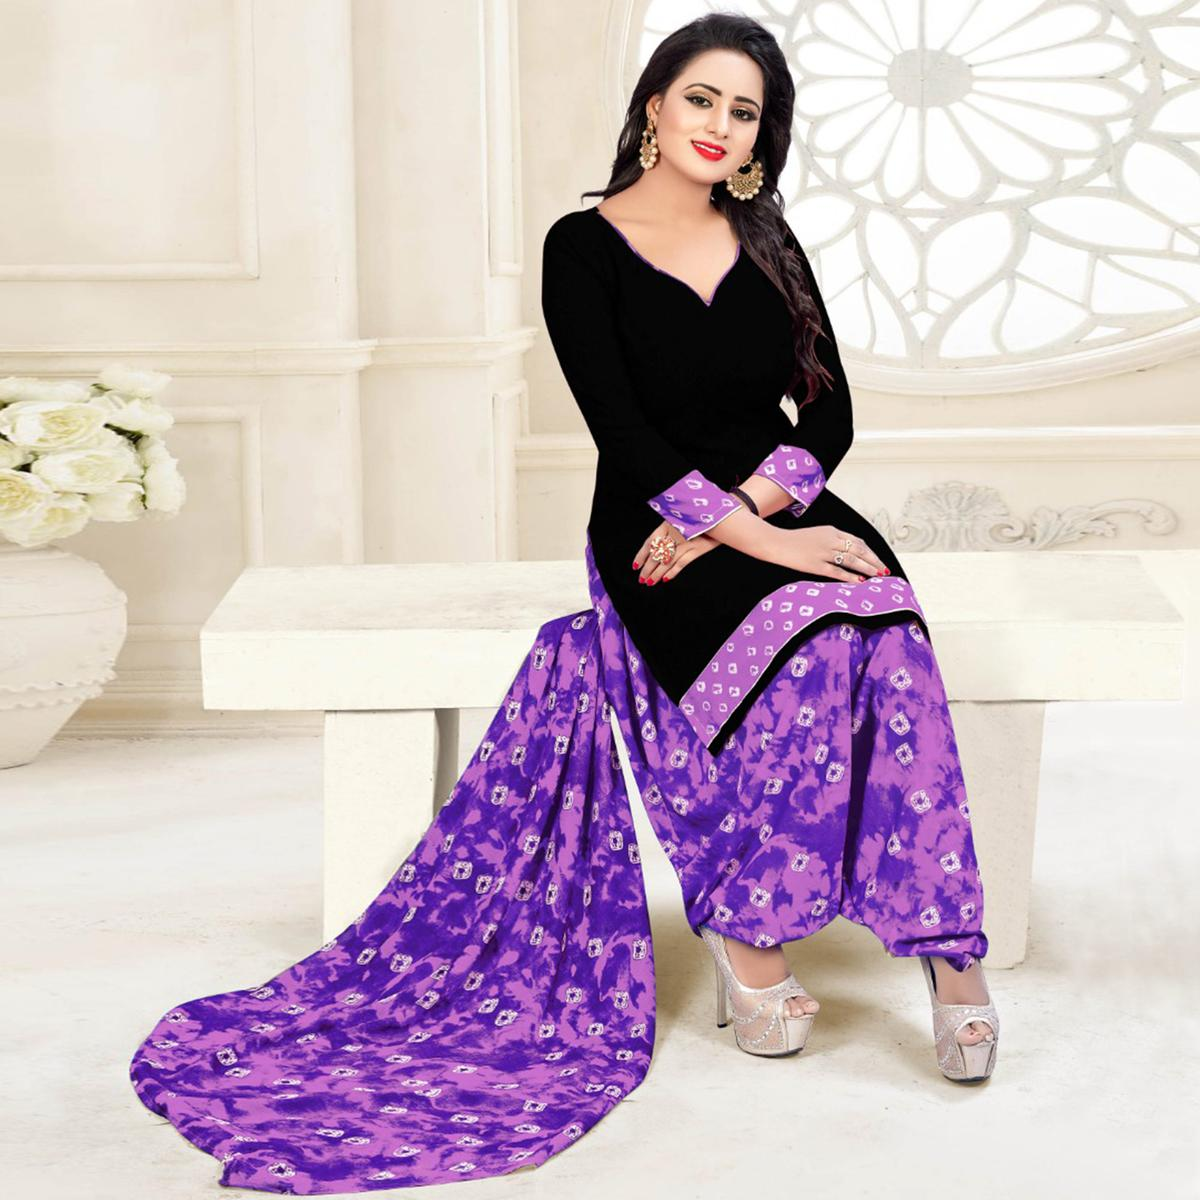 c6c3e8df36 Buy Adorable Black & Purple Colored Casual Wear Printed Crepe Salwar Suit  for womens online India, Best Prices, Reviews - Peachmode